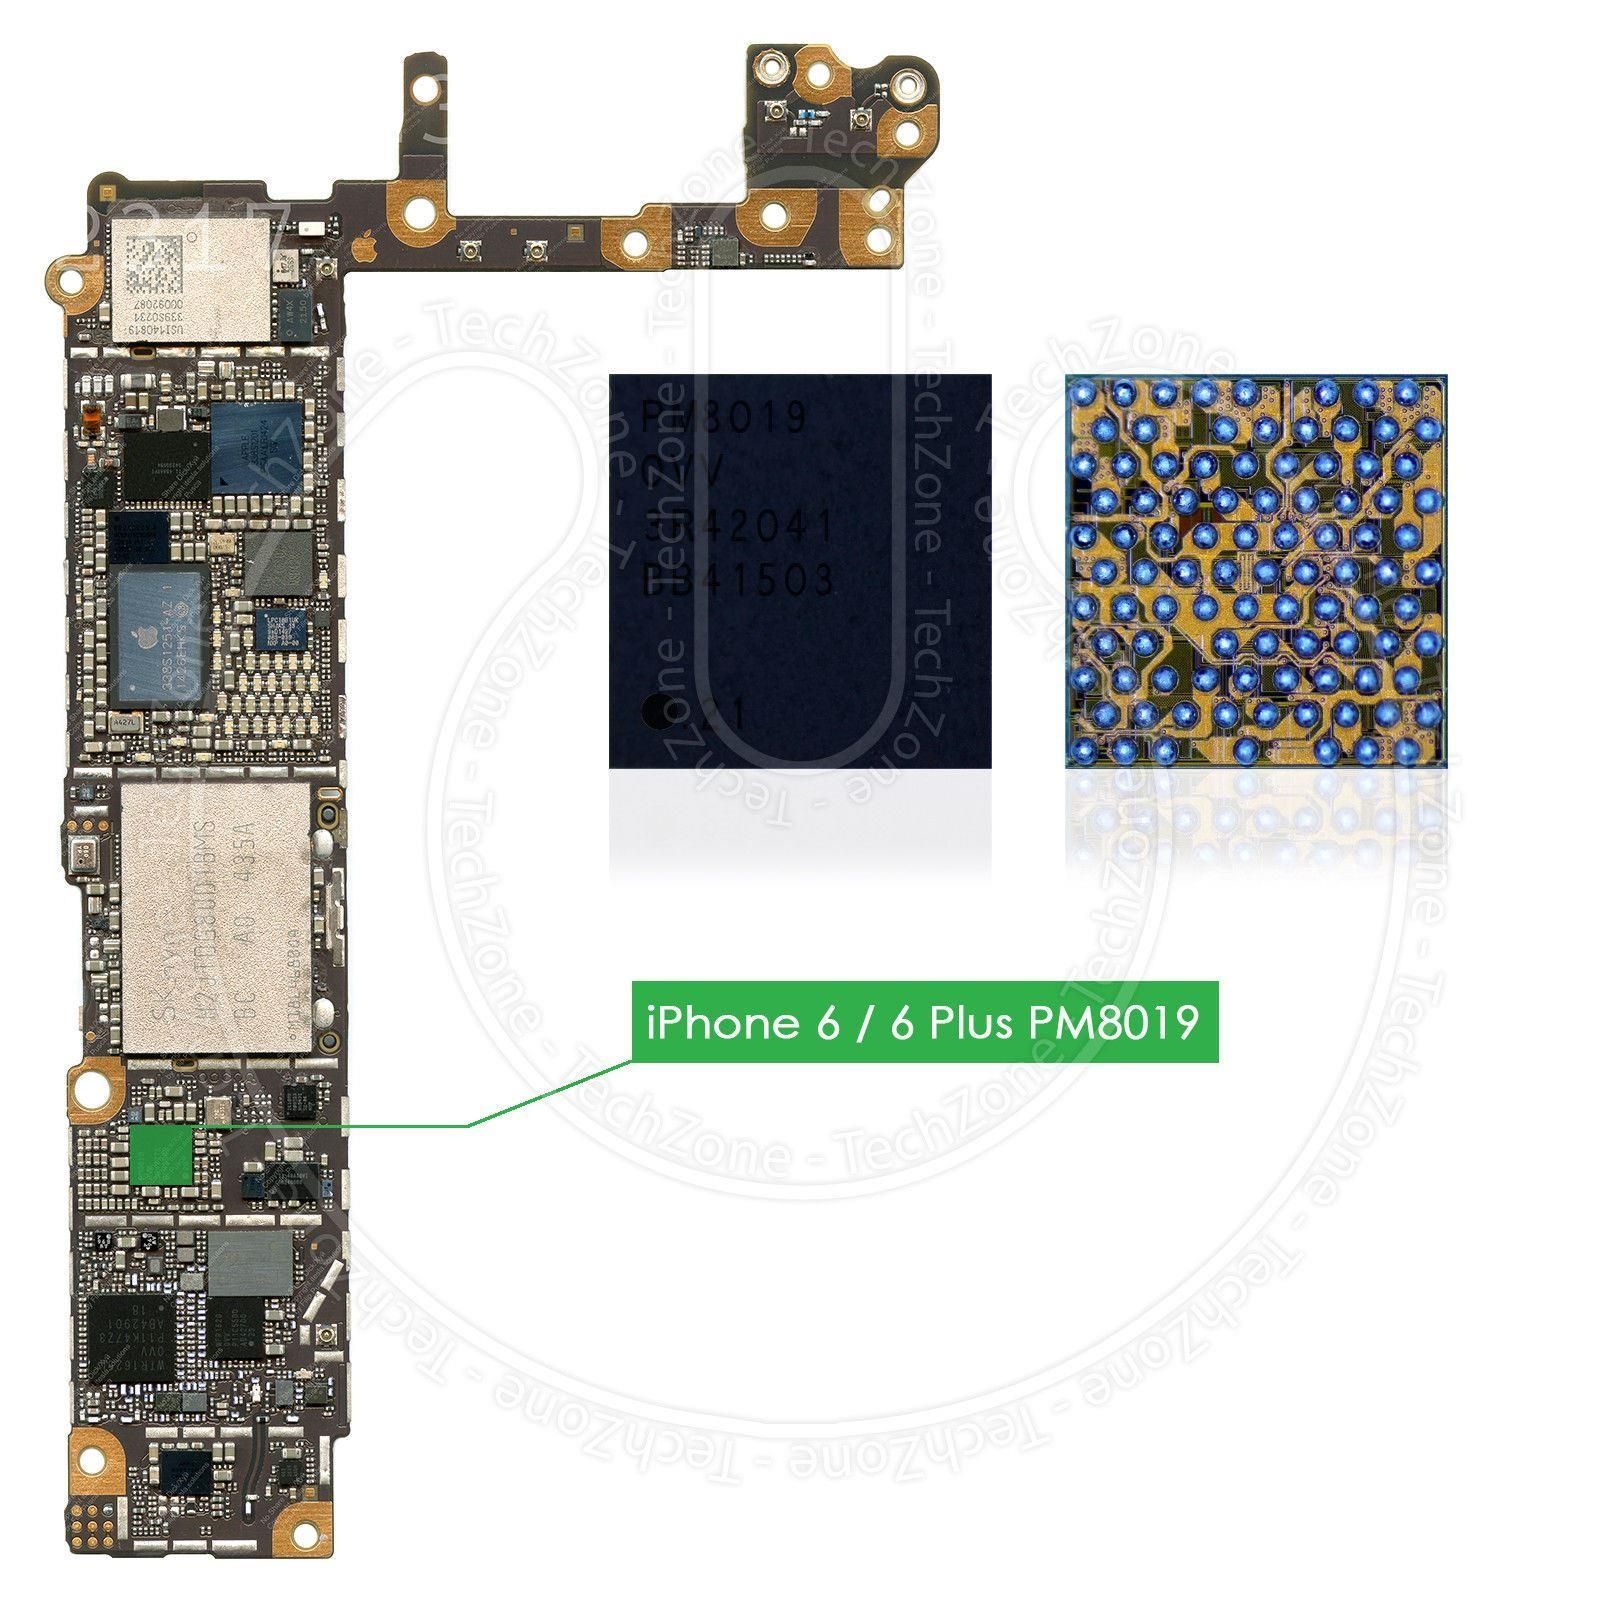 hot sale online 06571 9988e PM8019 Power Management IC Chip PMIC for Apple iPhone 6 & iPhone 6 Plus +